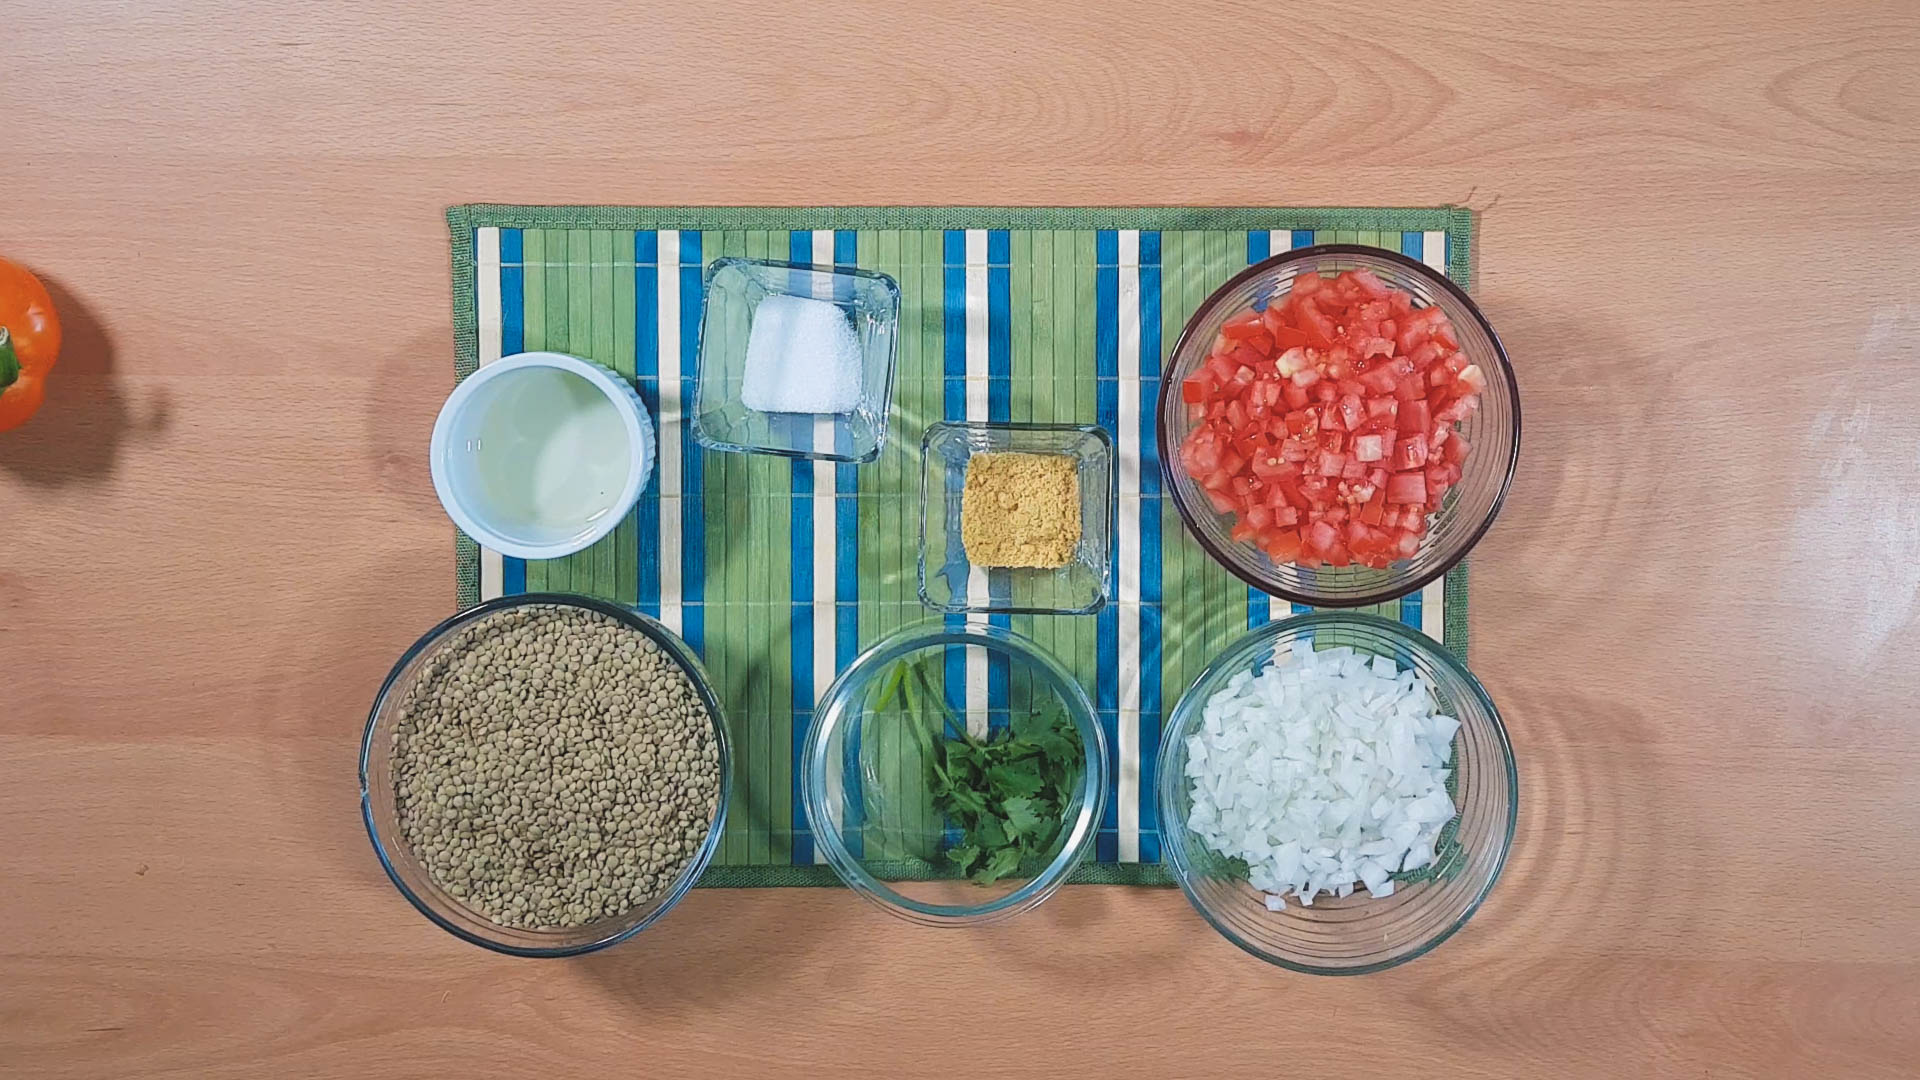 The ingredients for making healthy meal prep lentil soup